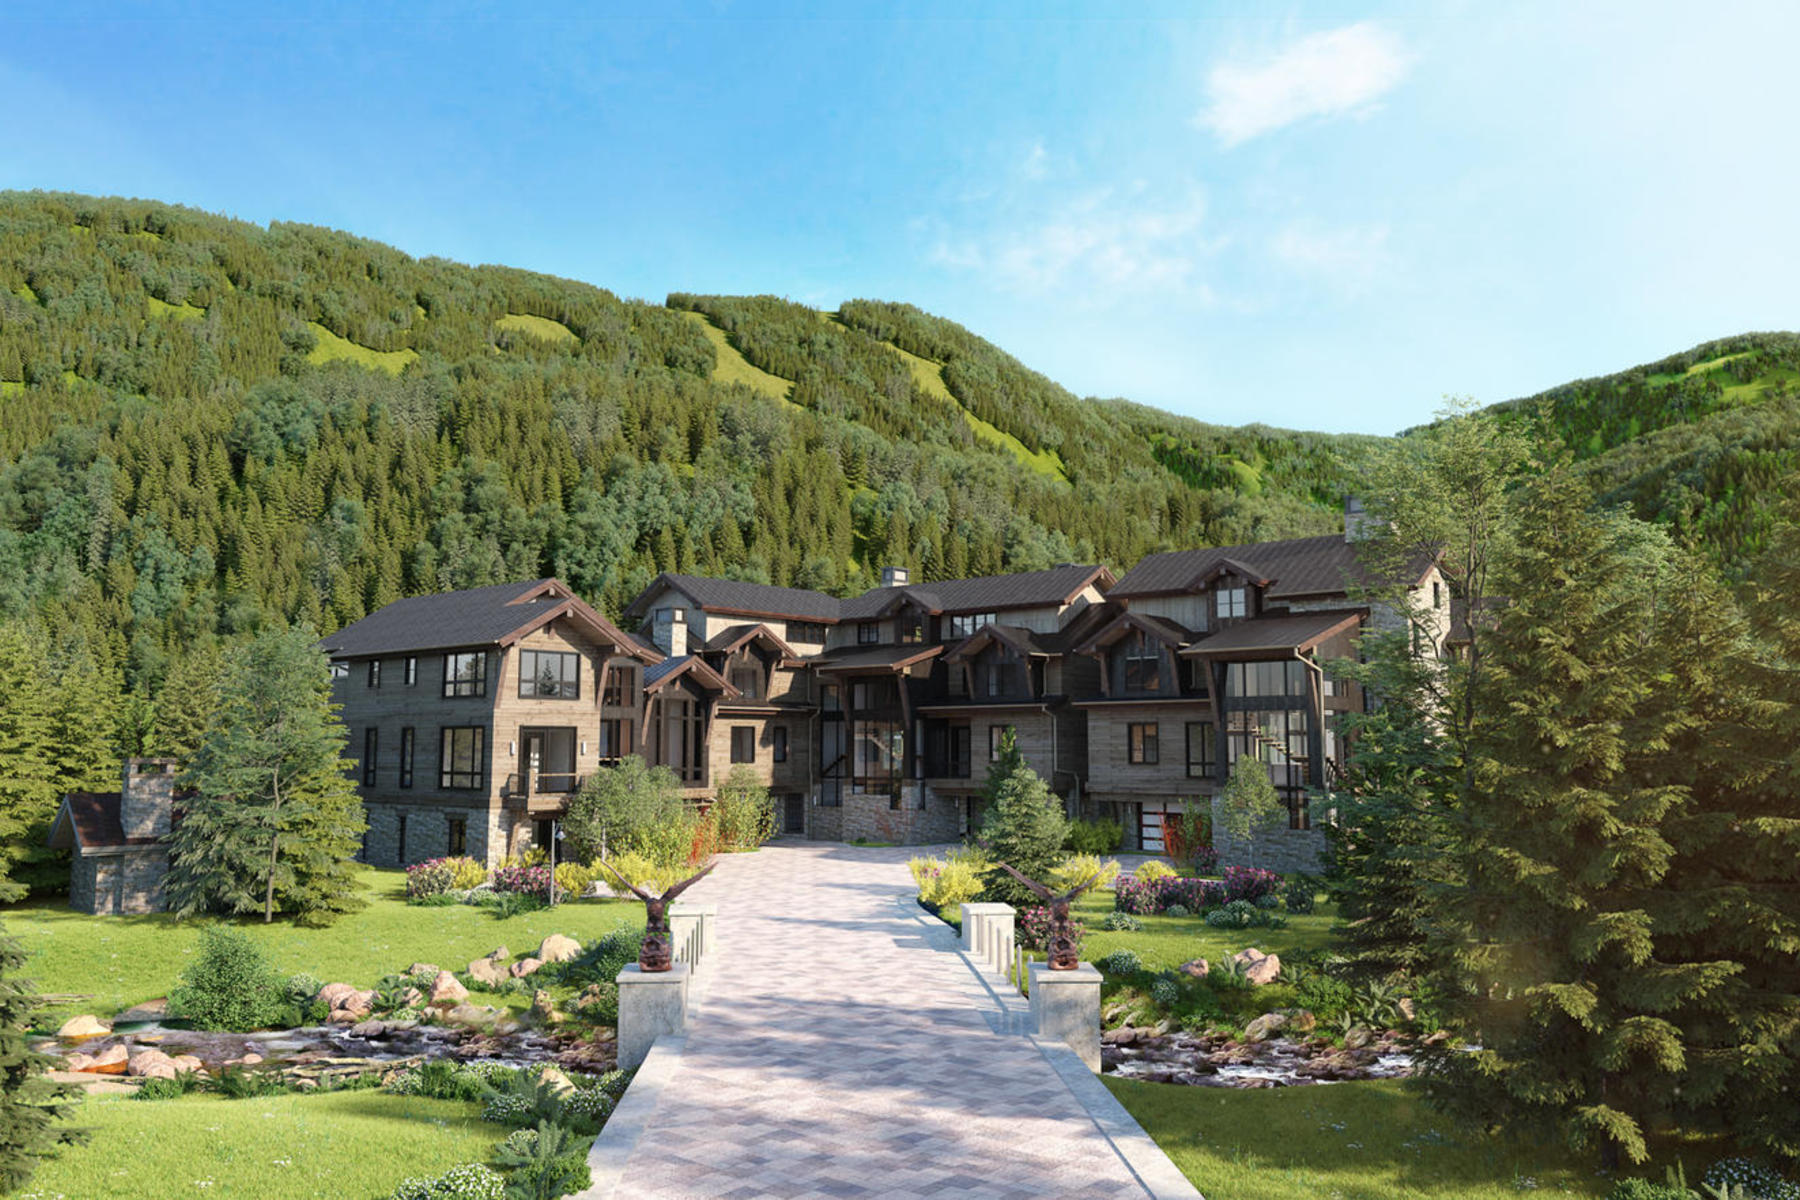 Single Family Homes for Sale at Peregrine Villas 191 Elk Track Road Beaver Creek, Colorado 81620 United States